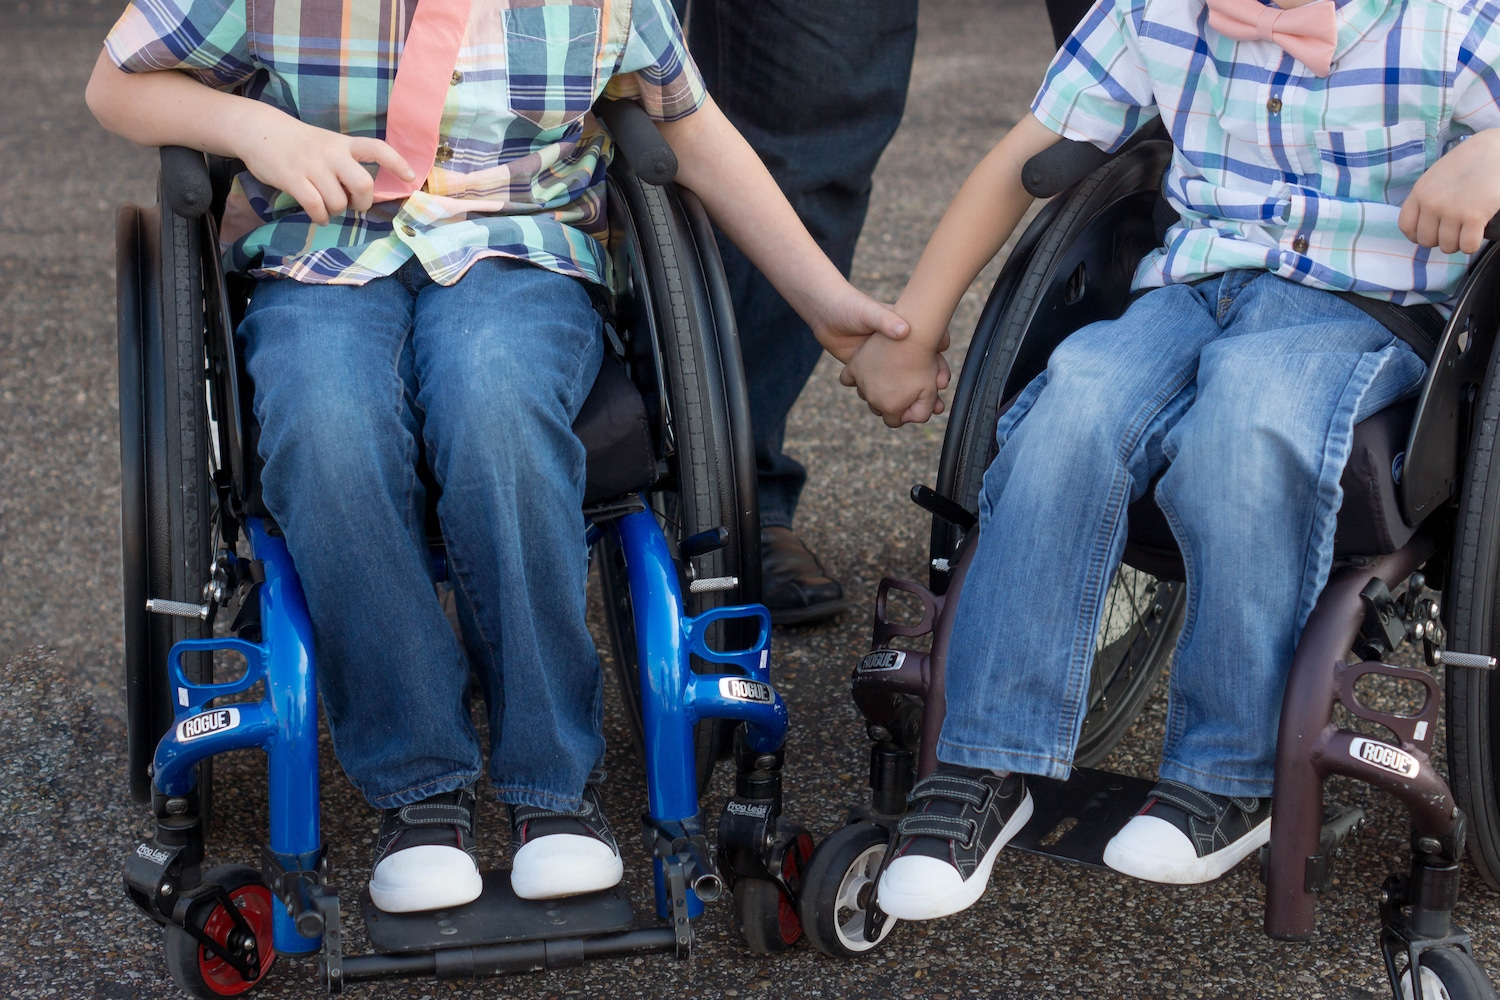 Two boys from the chest down in wheelchairs holding hands.